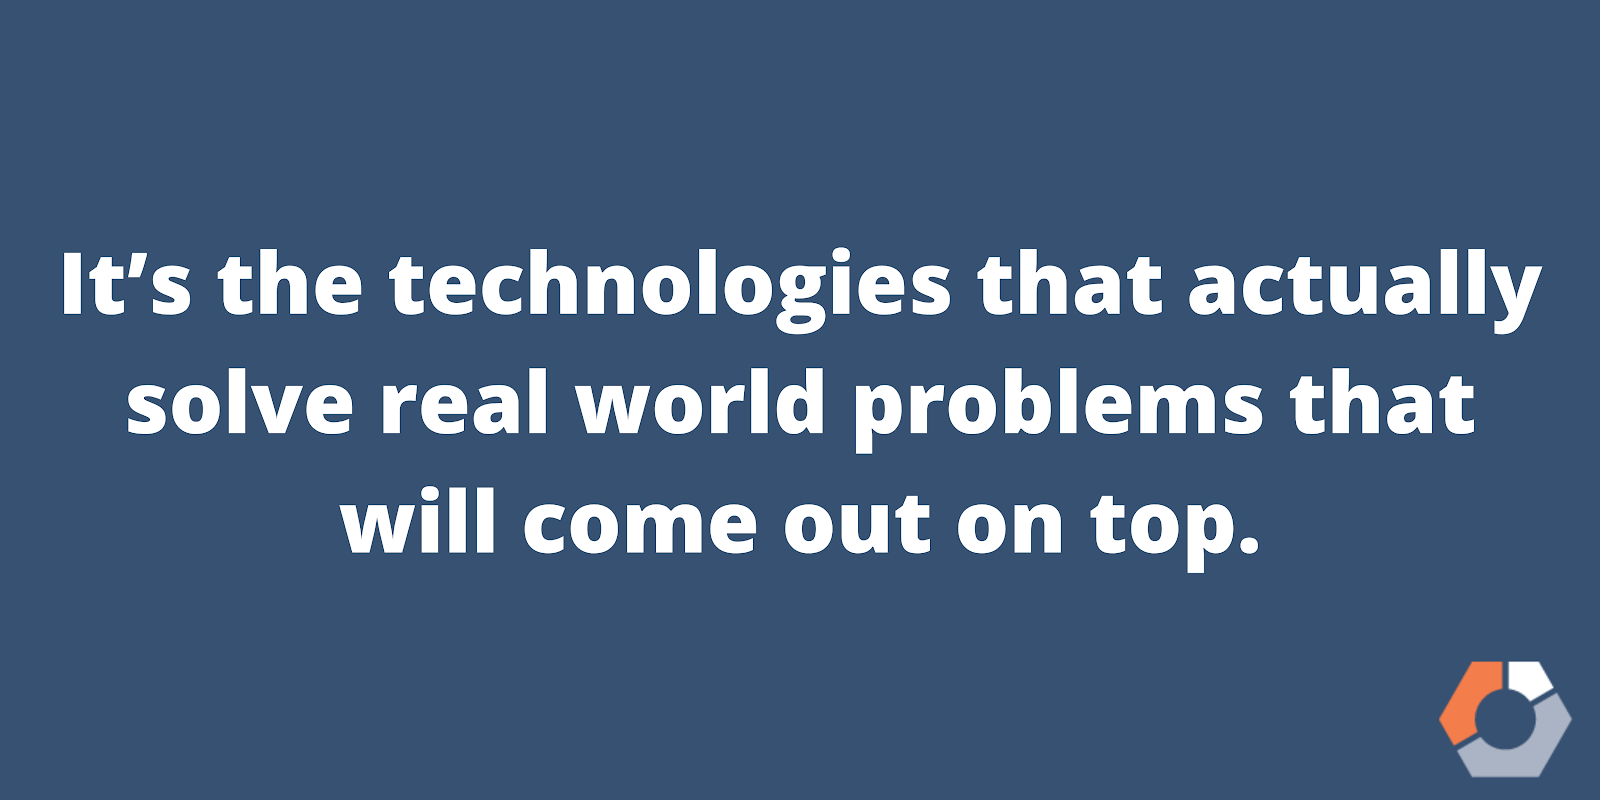 """A bold statement notes that """"it's the technologies that actually solve real world problems that will come out on top."""""""